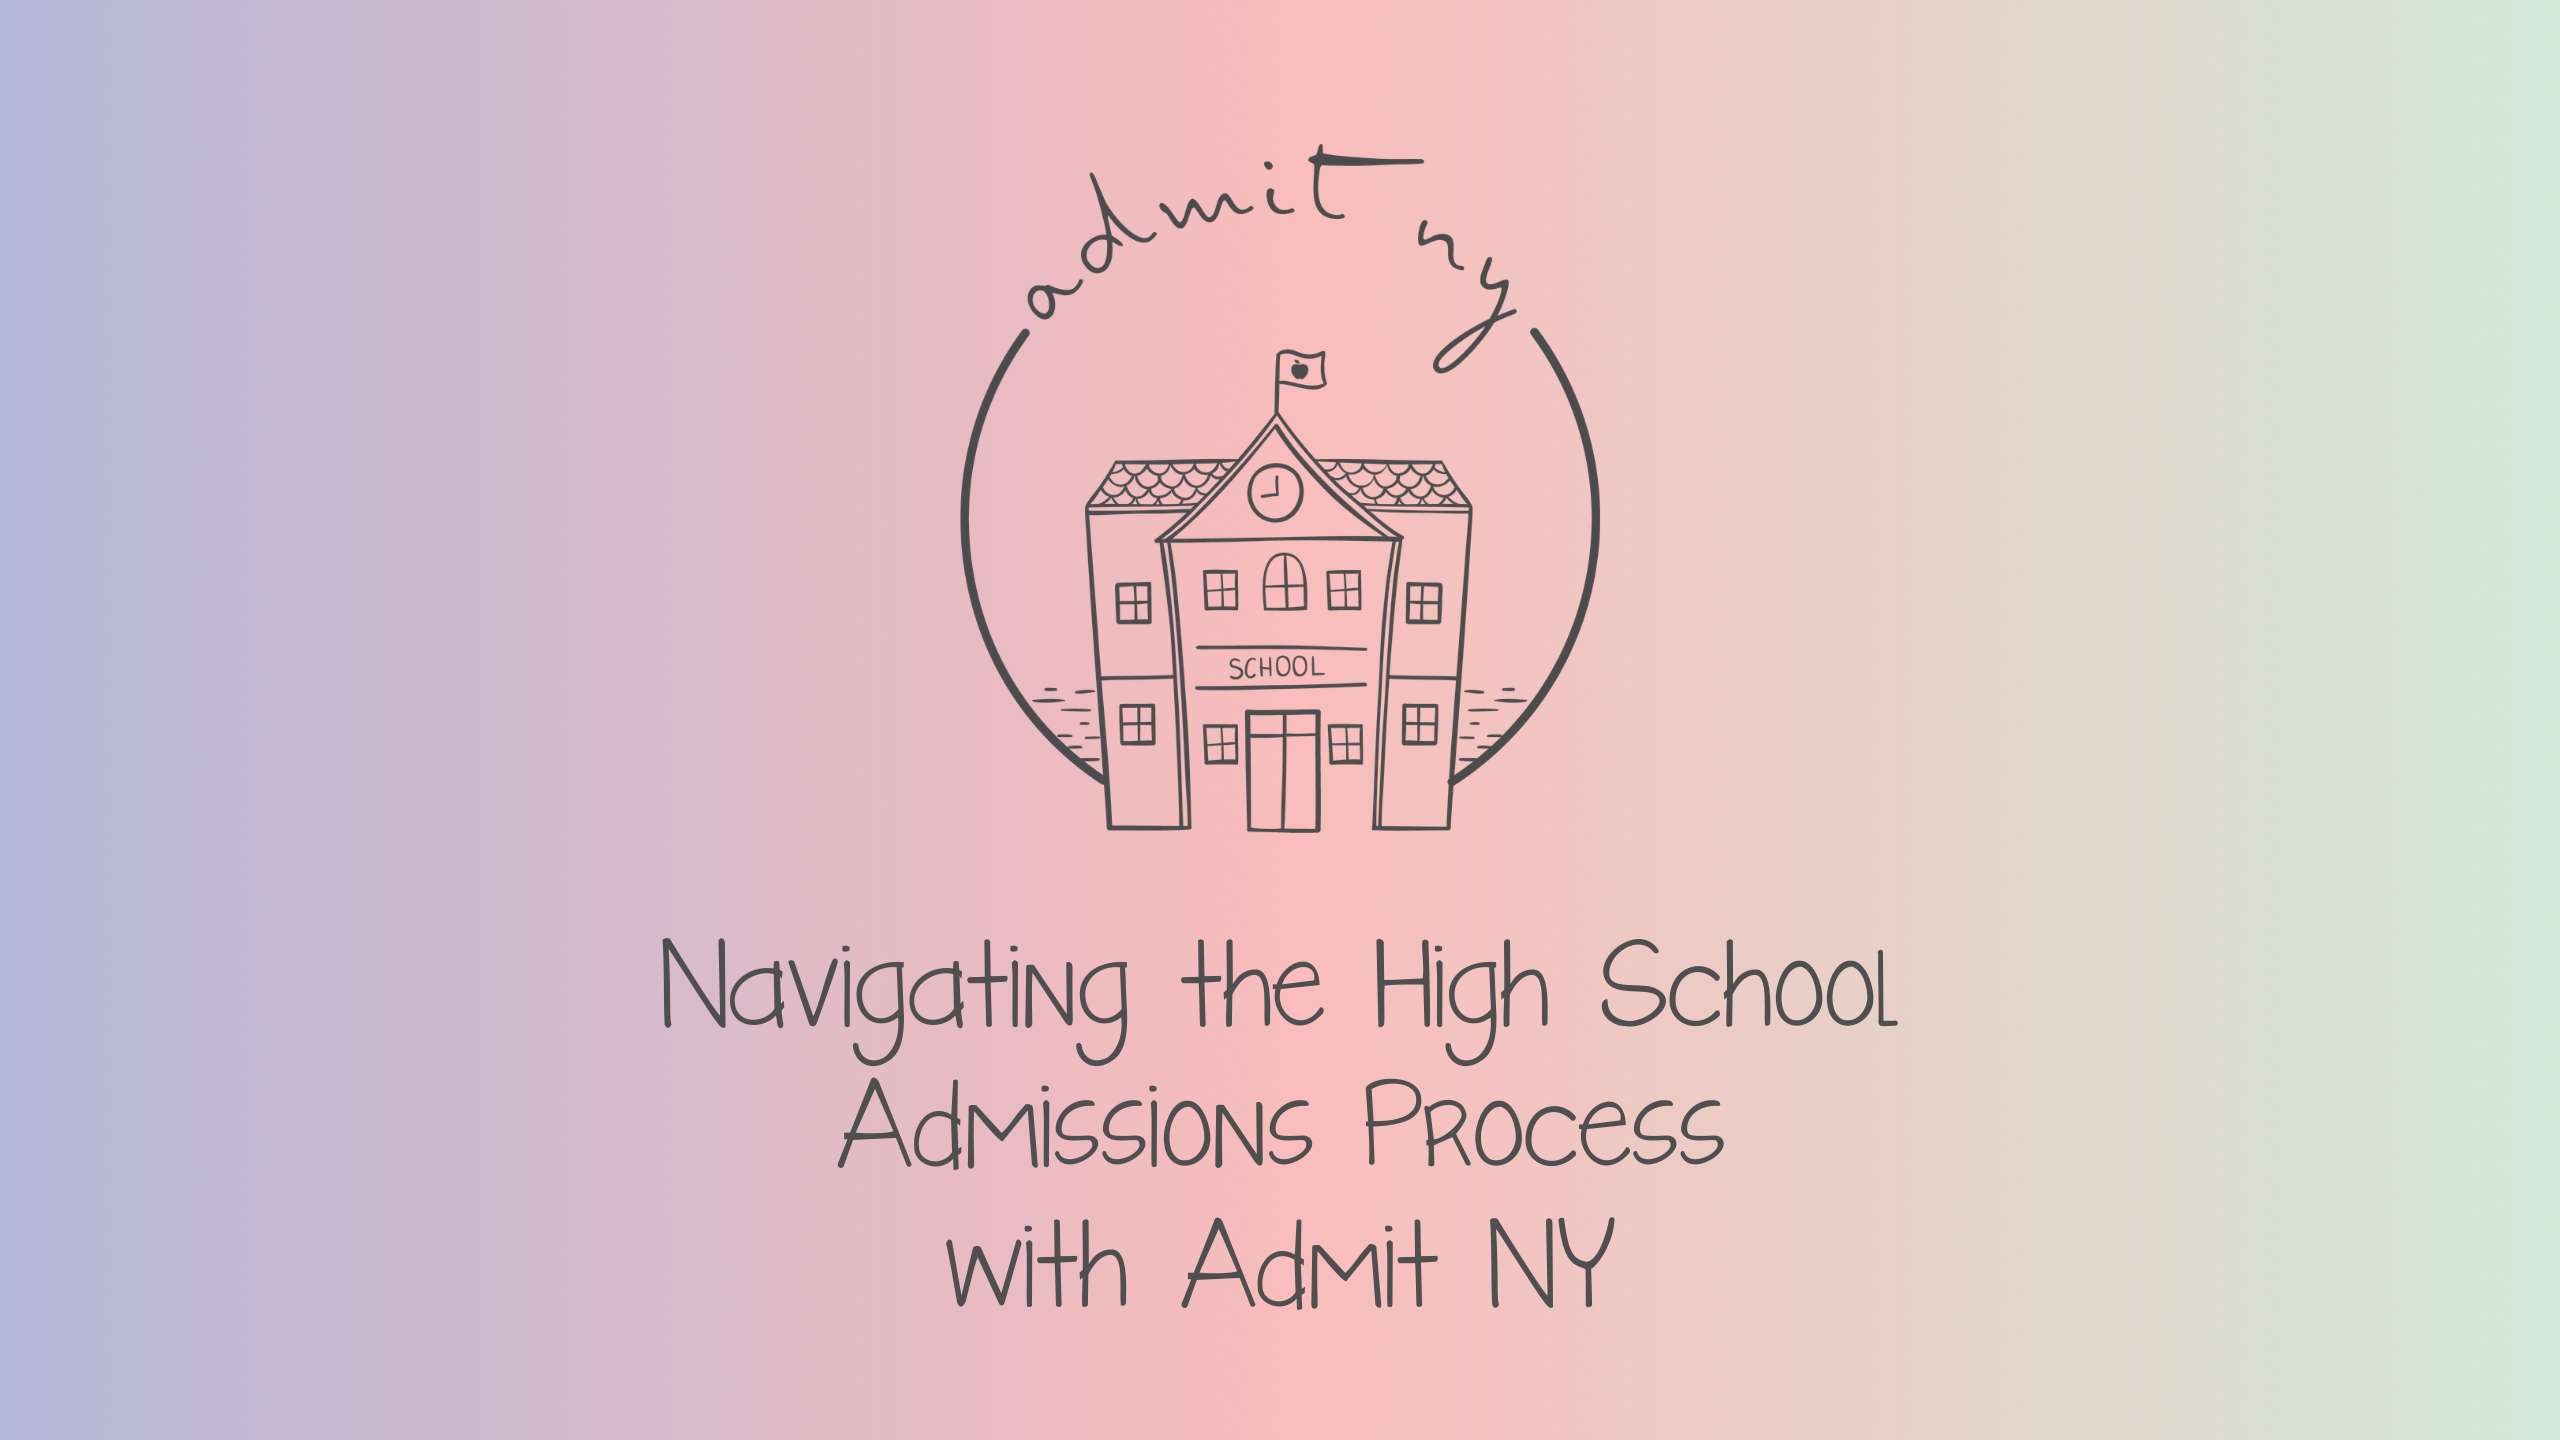 Navigating the High School Admissions Process with Admit NY